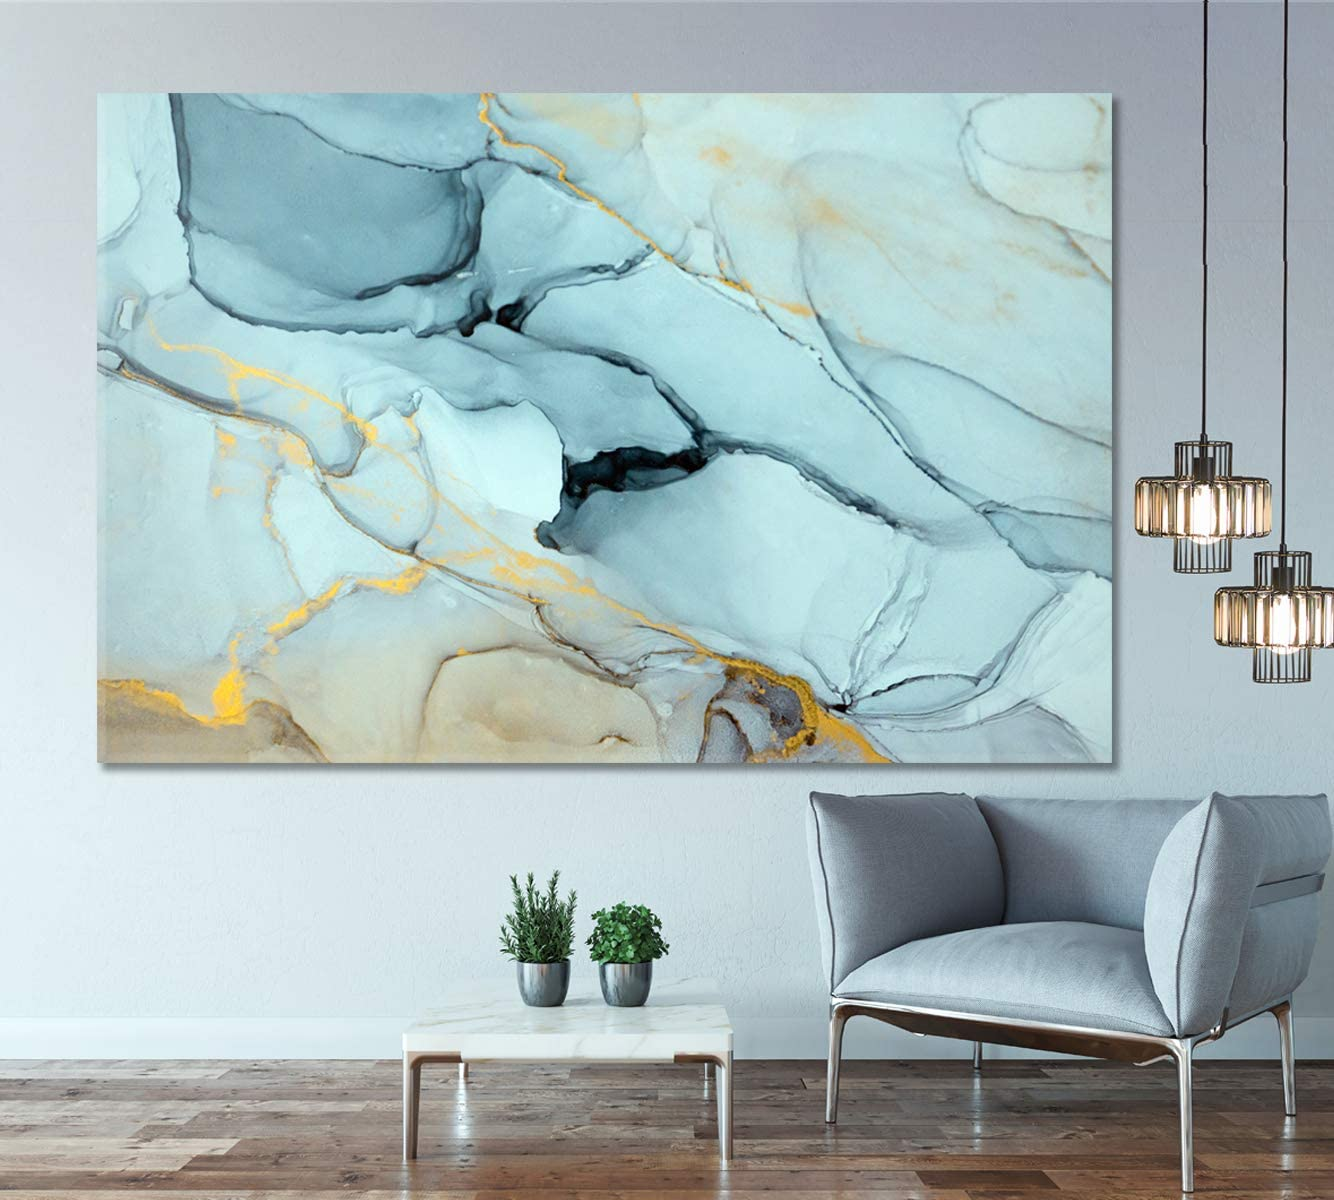 """Amazon.com: Marble Wall Decor, Abstract Marble Canvas Print, Beautiful Abstract Art, Modern Wall Decor, Large Canvas Print, 1 Panel (24""""x16"""") : Everything Else"""